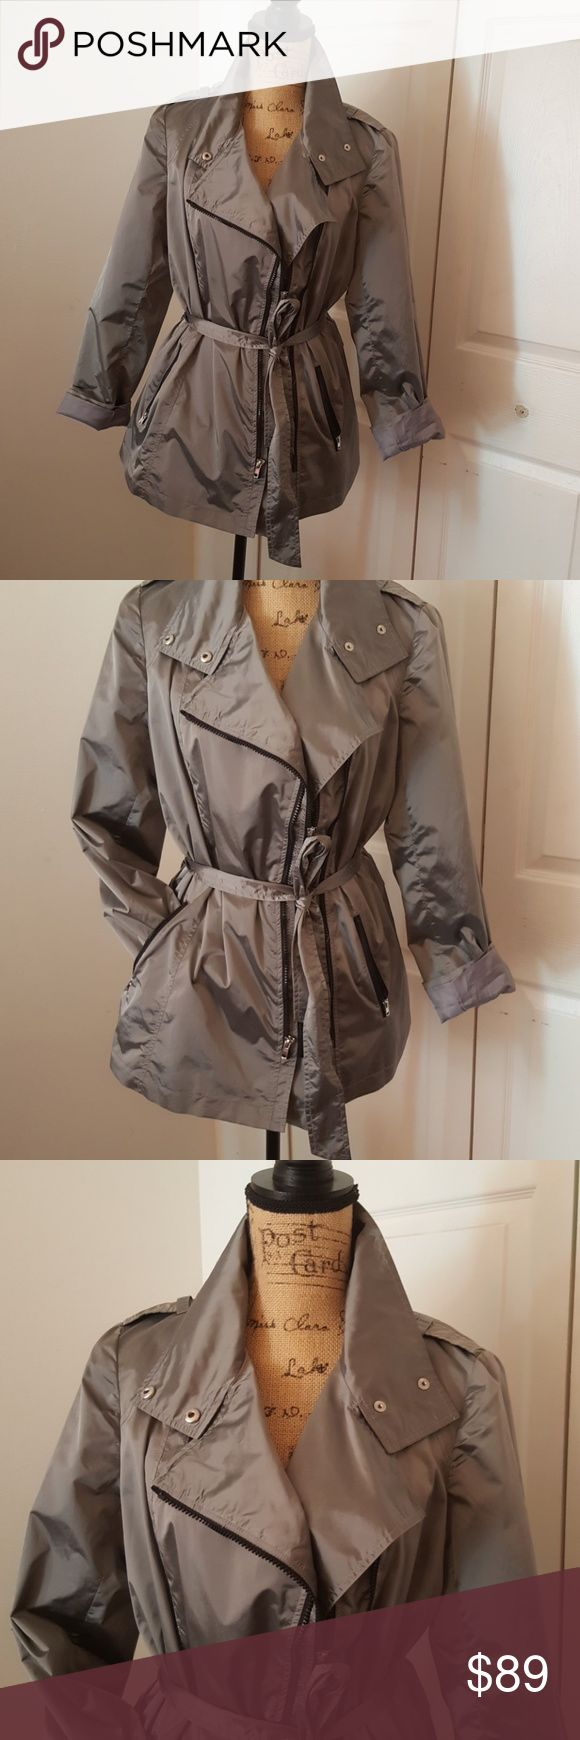 JONES OF JONE YORK RAIN JACKET This is brand new. Awesome metal LOOKING gunmetal jacket. Has two sets of zippers up front so it can be bigger or smaller. A lot of pockets. Lined. Jones New York Jackets & Coats Utility Jackets